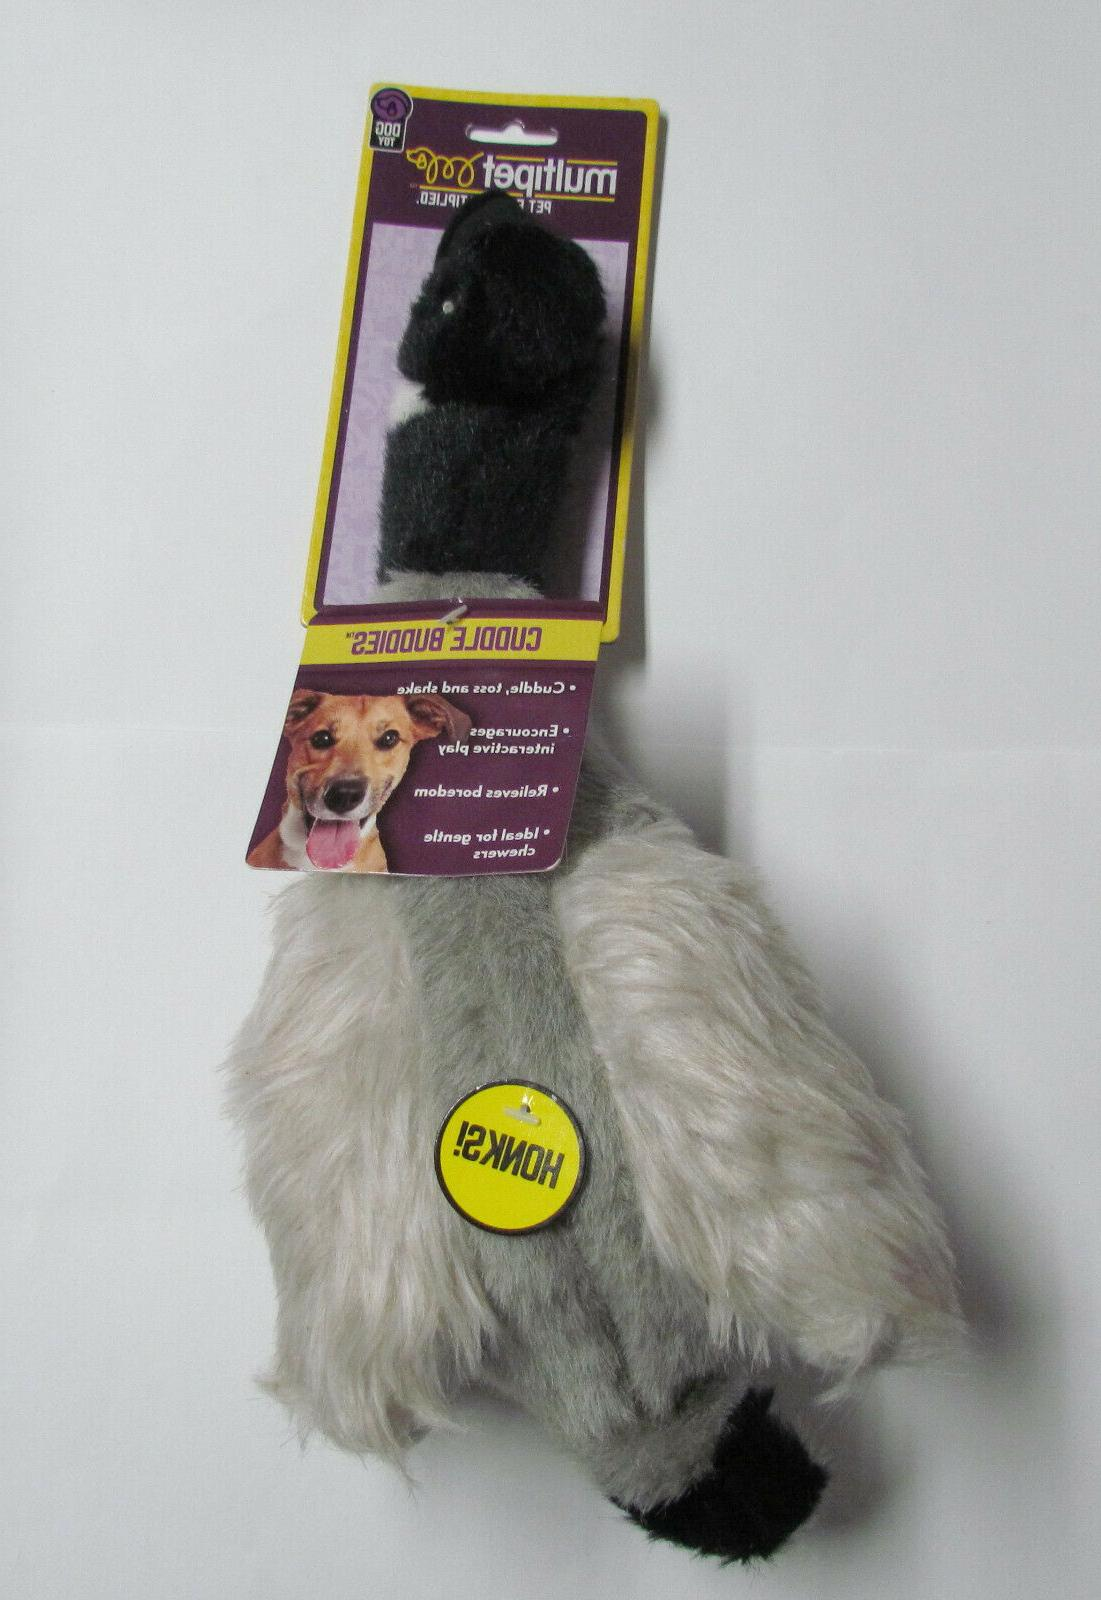 international migrator bird dog toy